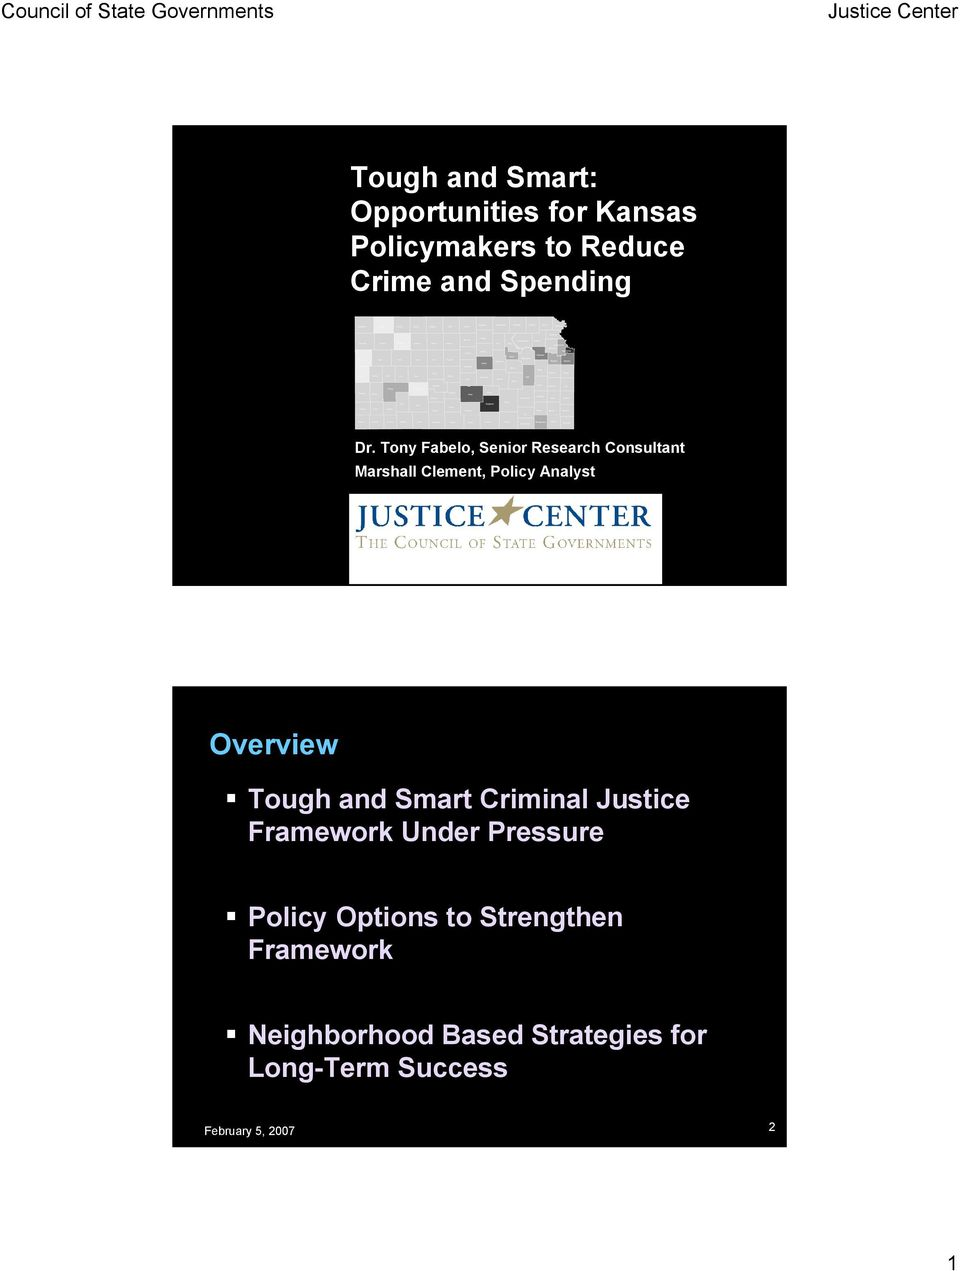 Overview Tough and Smart Criminal Justice Framework Under Pressure Policy Options to